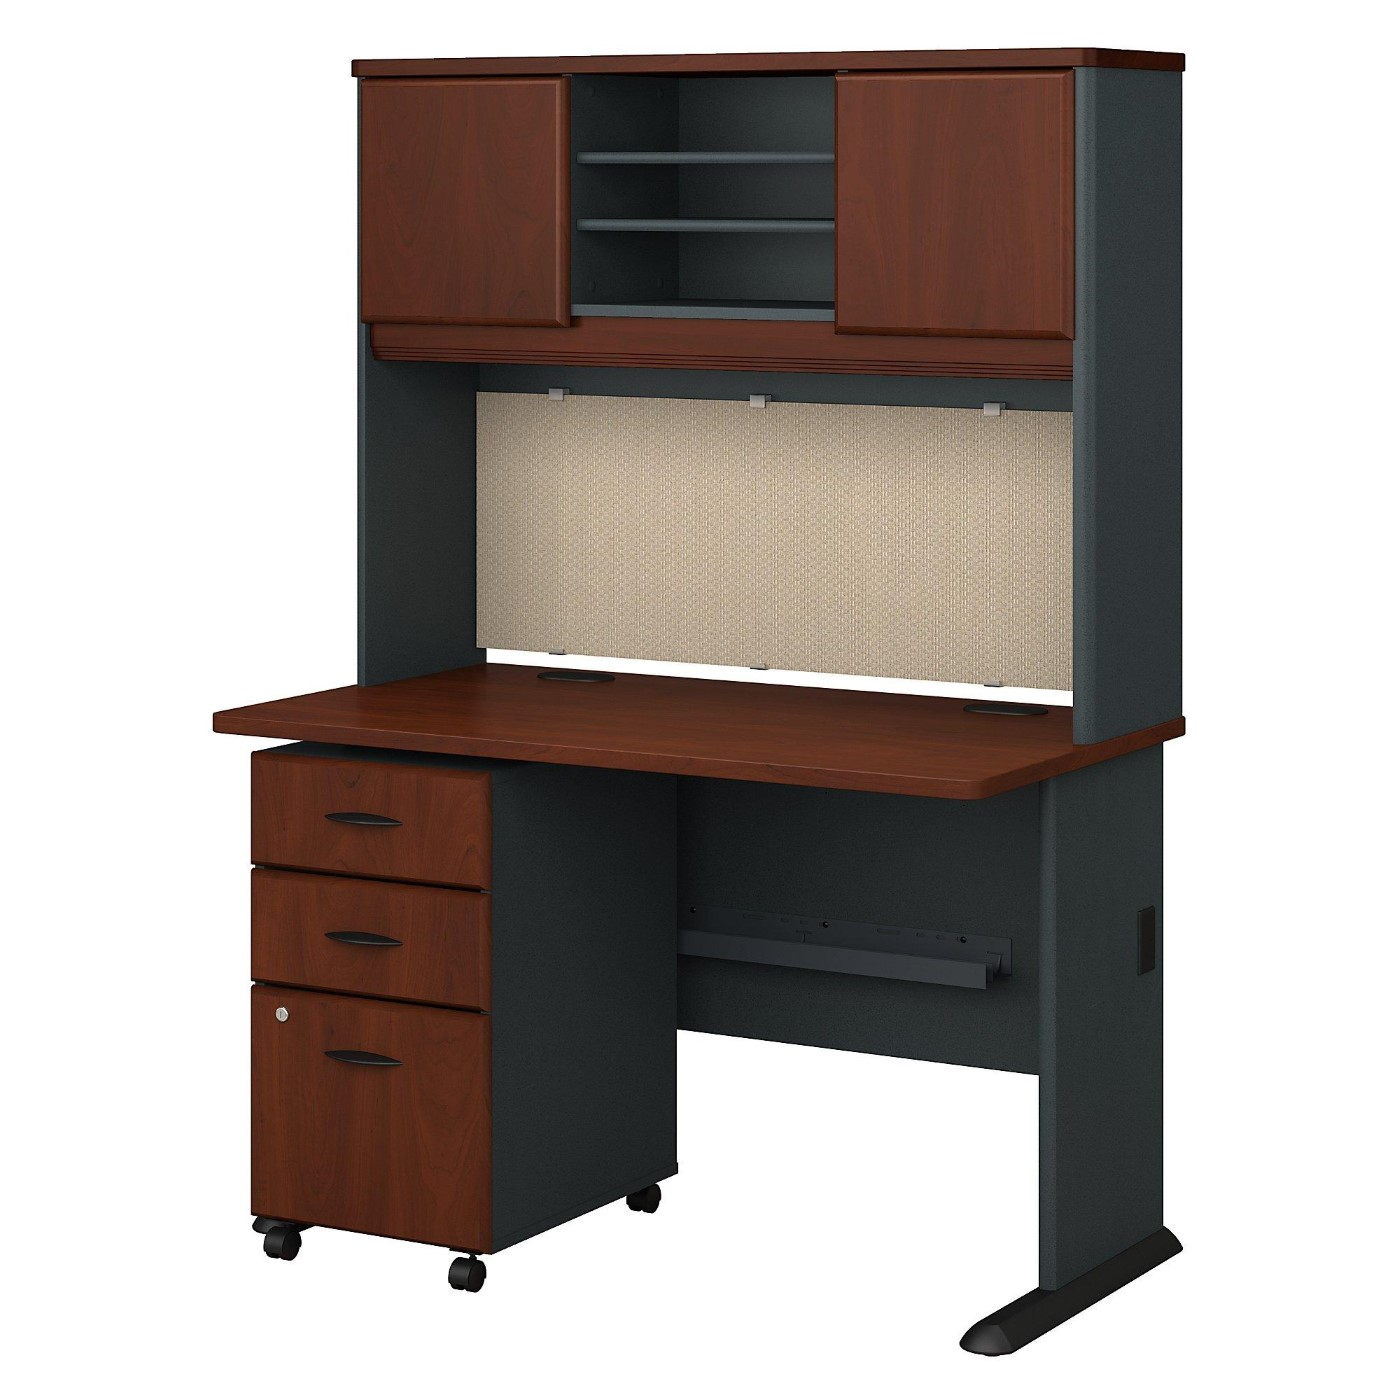 <font color=#c60><b>BUSH BUSINESS FURNITURE SERIES A 48W DESK WITH HUTCH AND MOBILE FILE CABINET. FREE SHIPPING</font></b>